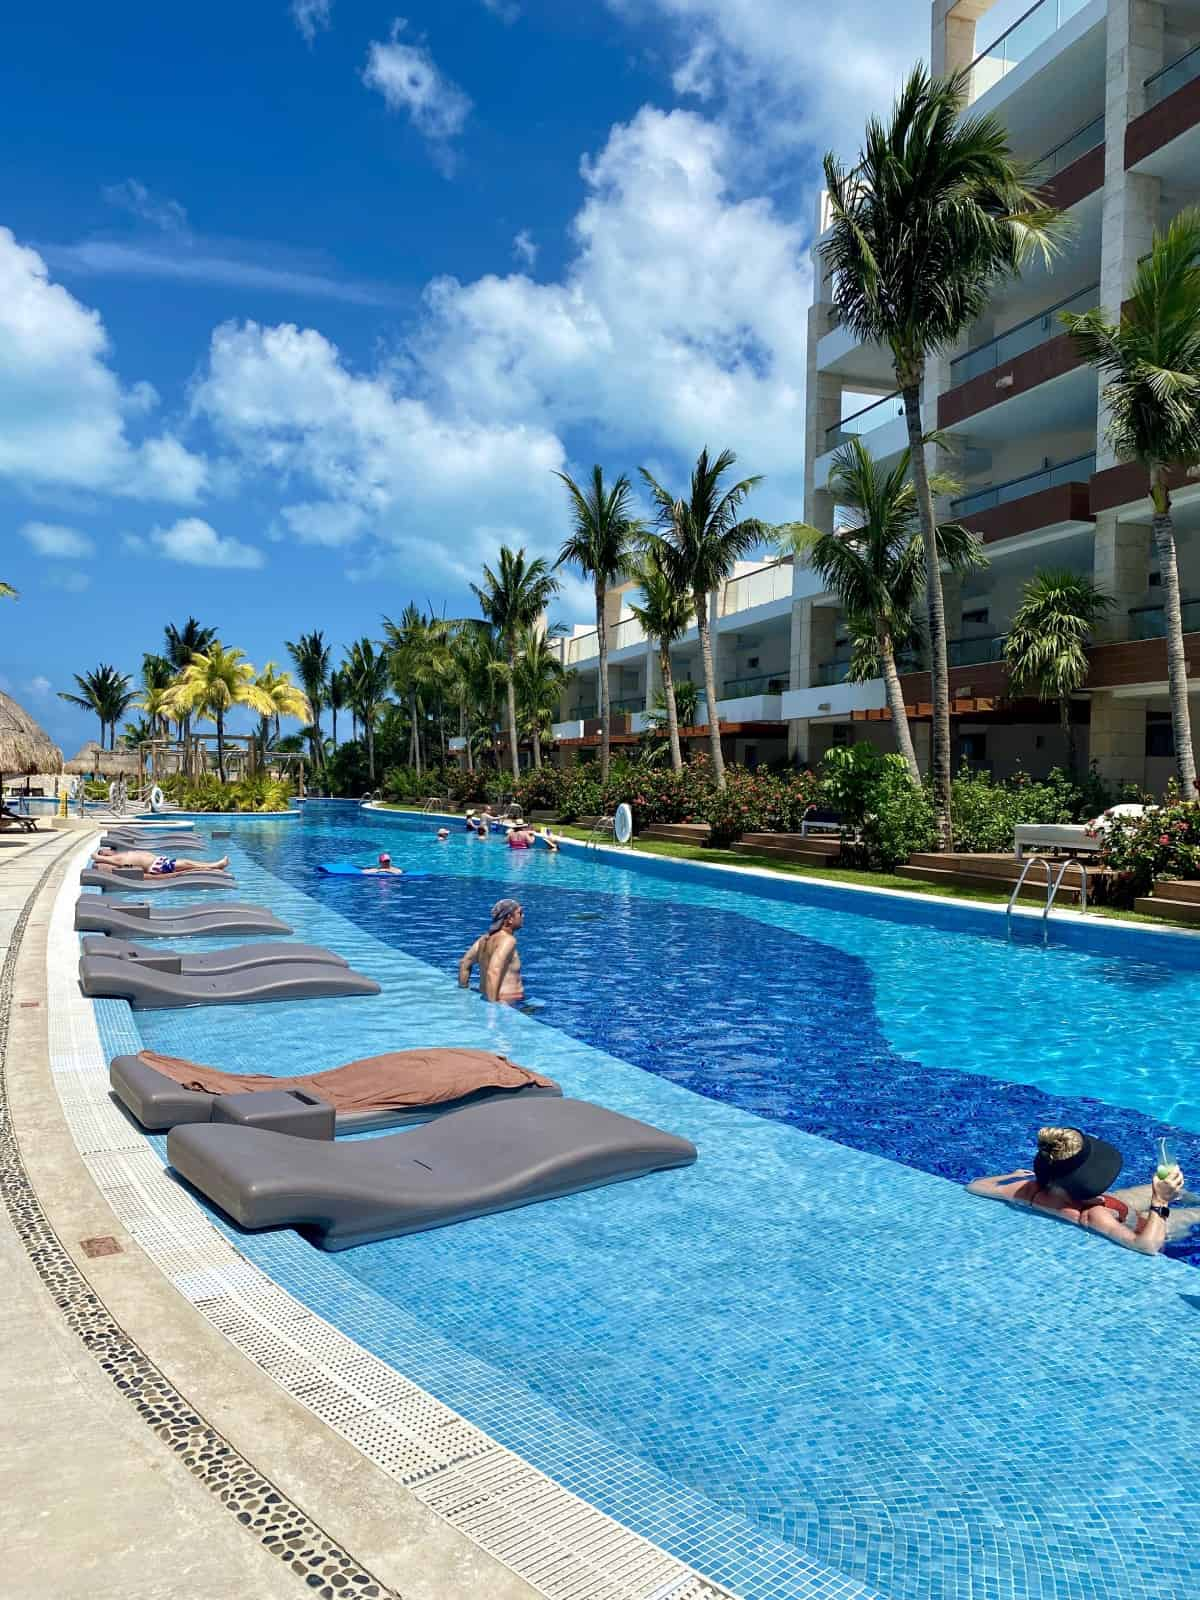 A Detailed Honest Review of Cancun's Excellence Playa Mujeres Resort   After staying 5 days I wanted to write a thorough Excellence Playa Mujeres review for this Cancun Mexico resort, to talk about the rooms, resort grounds, pools, beach, service, activities, & more. Includes whether Excellence Club is worth it at EPM! #resortreview #cancun #mexico #excellenceplayamujeres #luxury